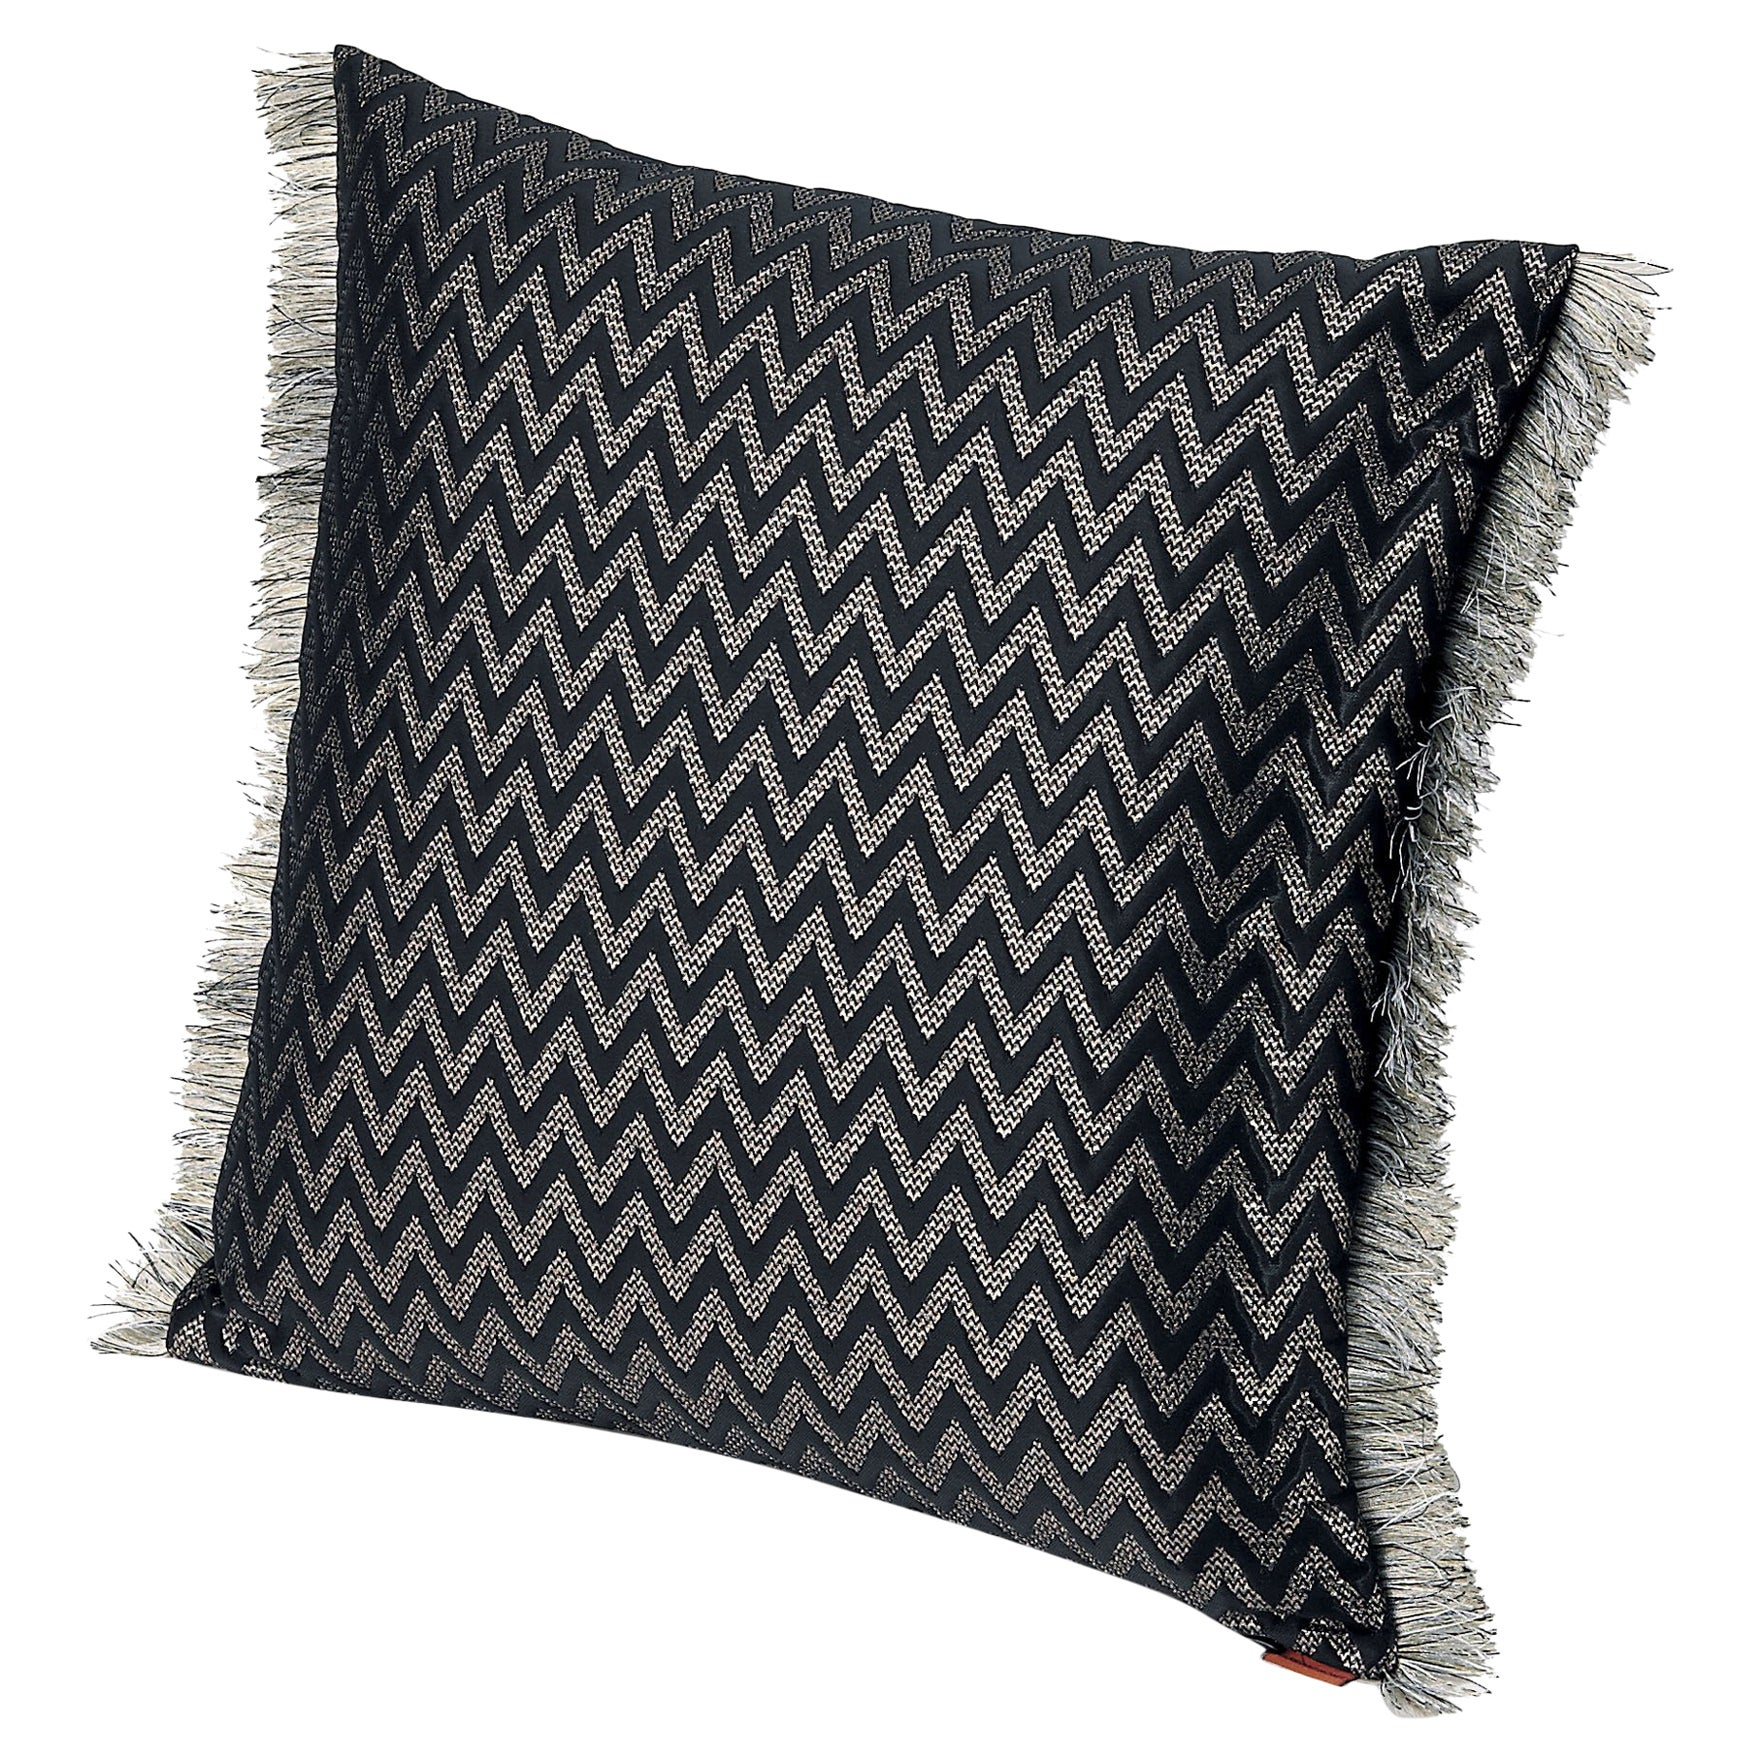 Missoni Home Stanford Cushion in Black Chevron Pattern with Gray Fringe Trim